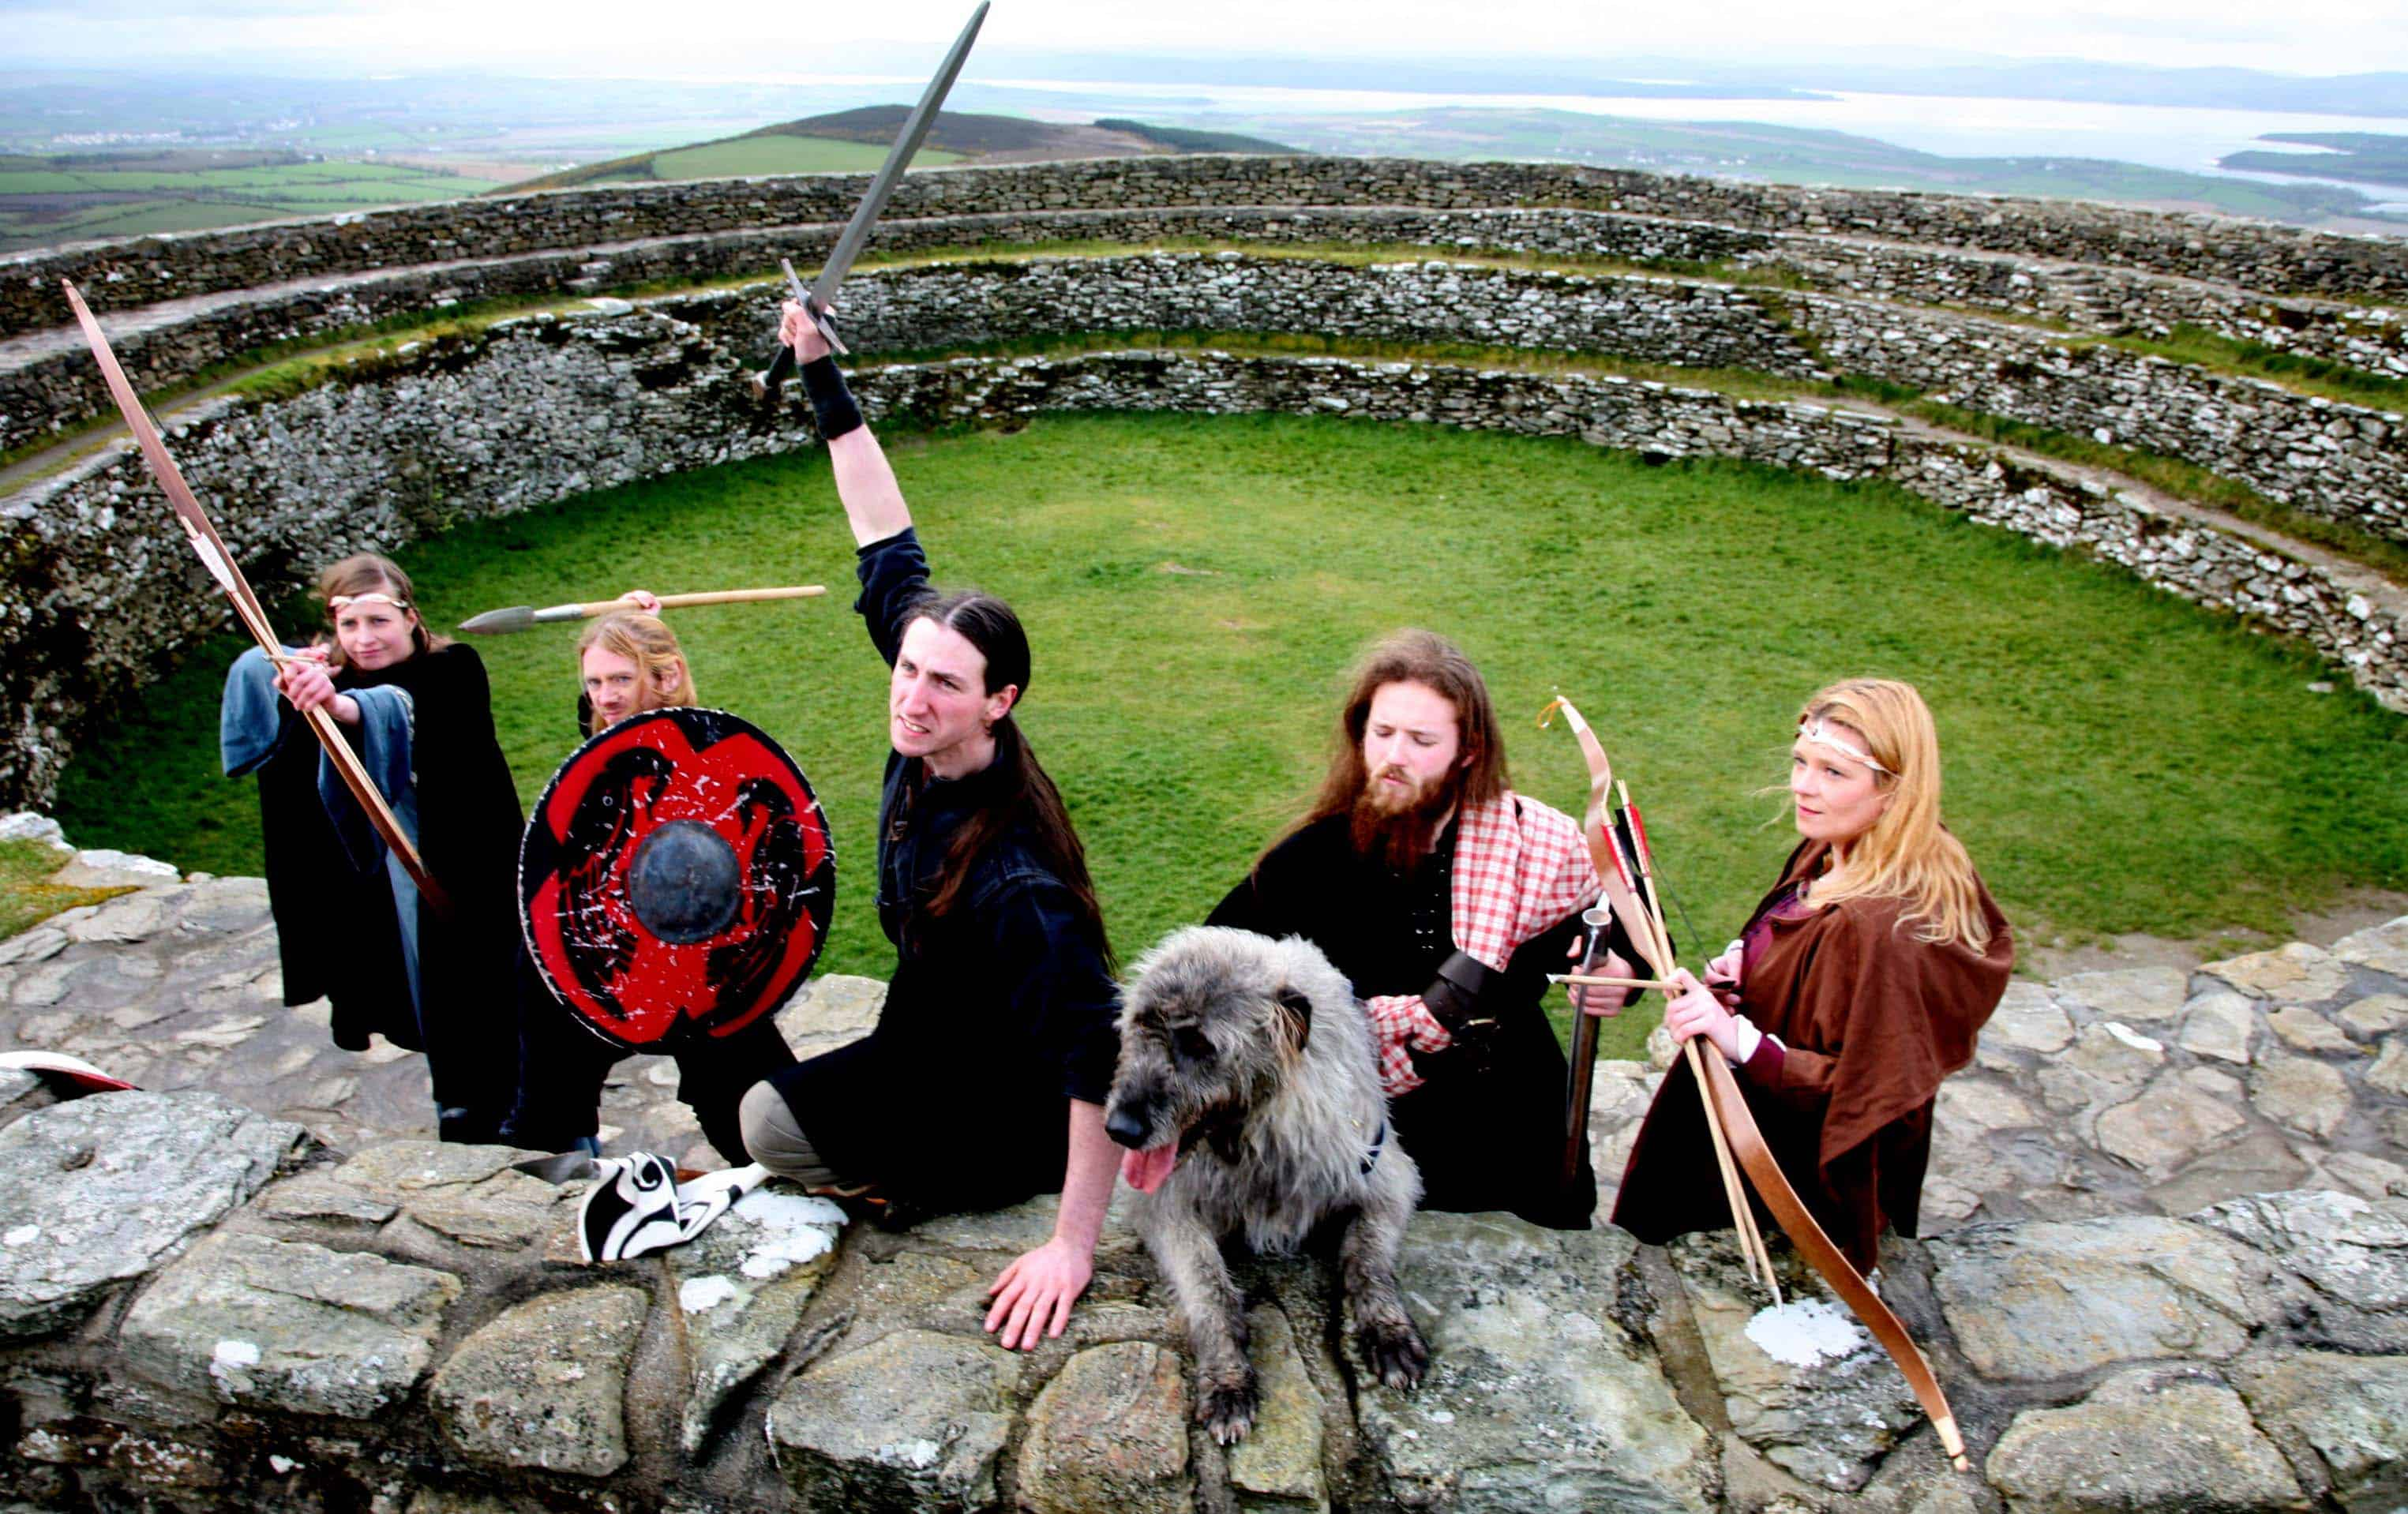 Awakening The Horsemen – A Summer Solstice Festival Planned For The Grianan Fort In County Donegal